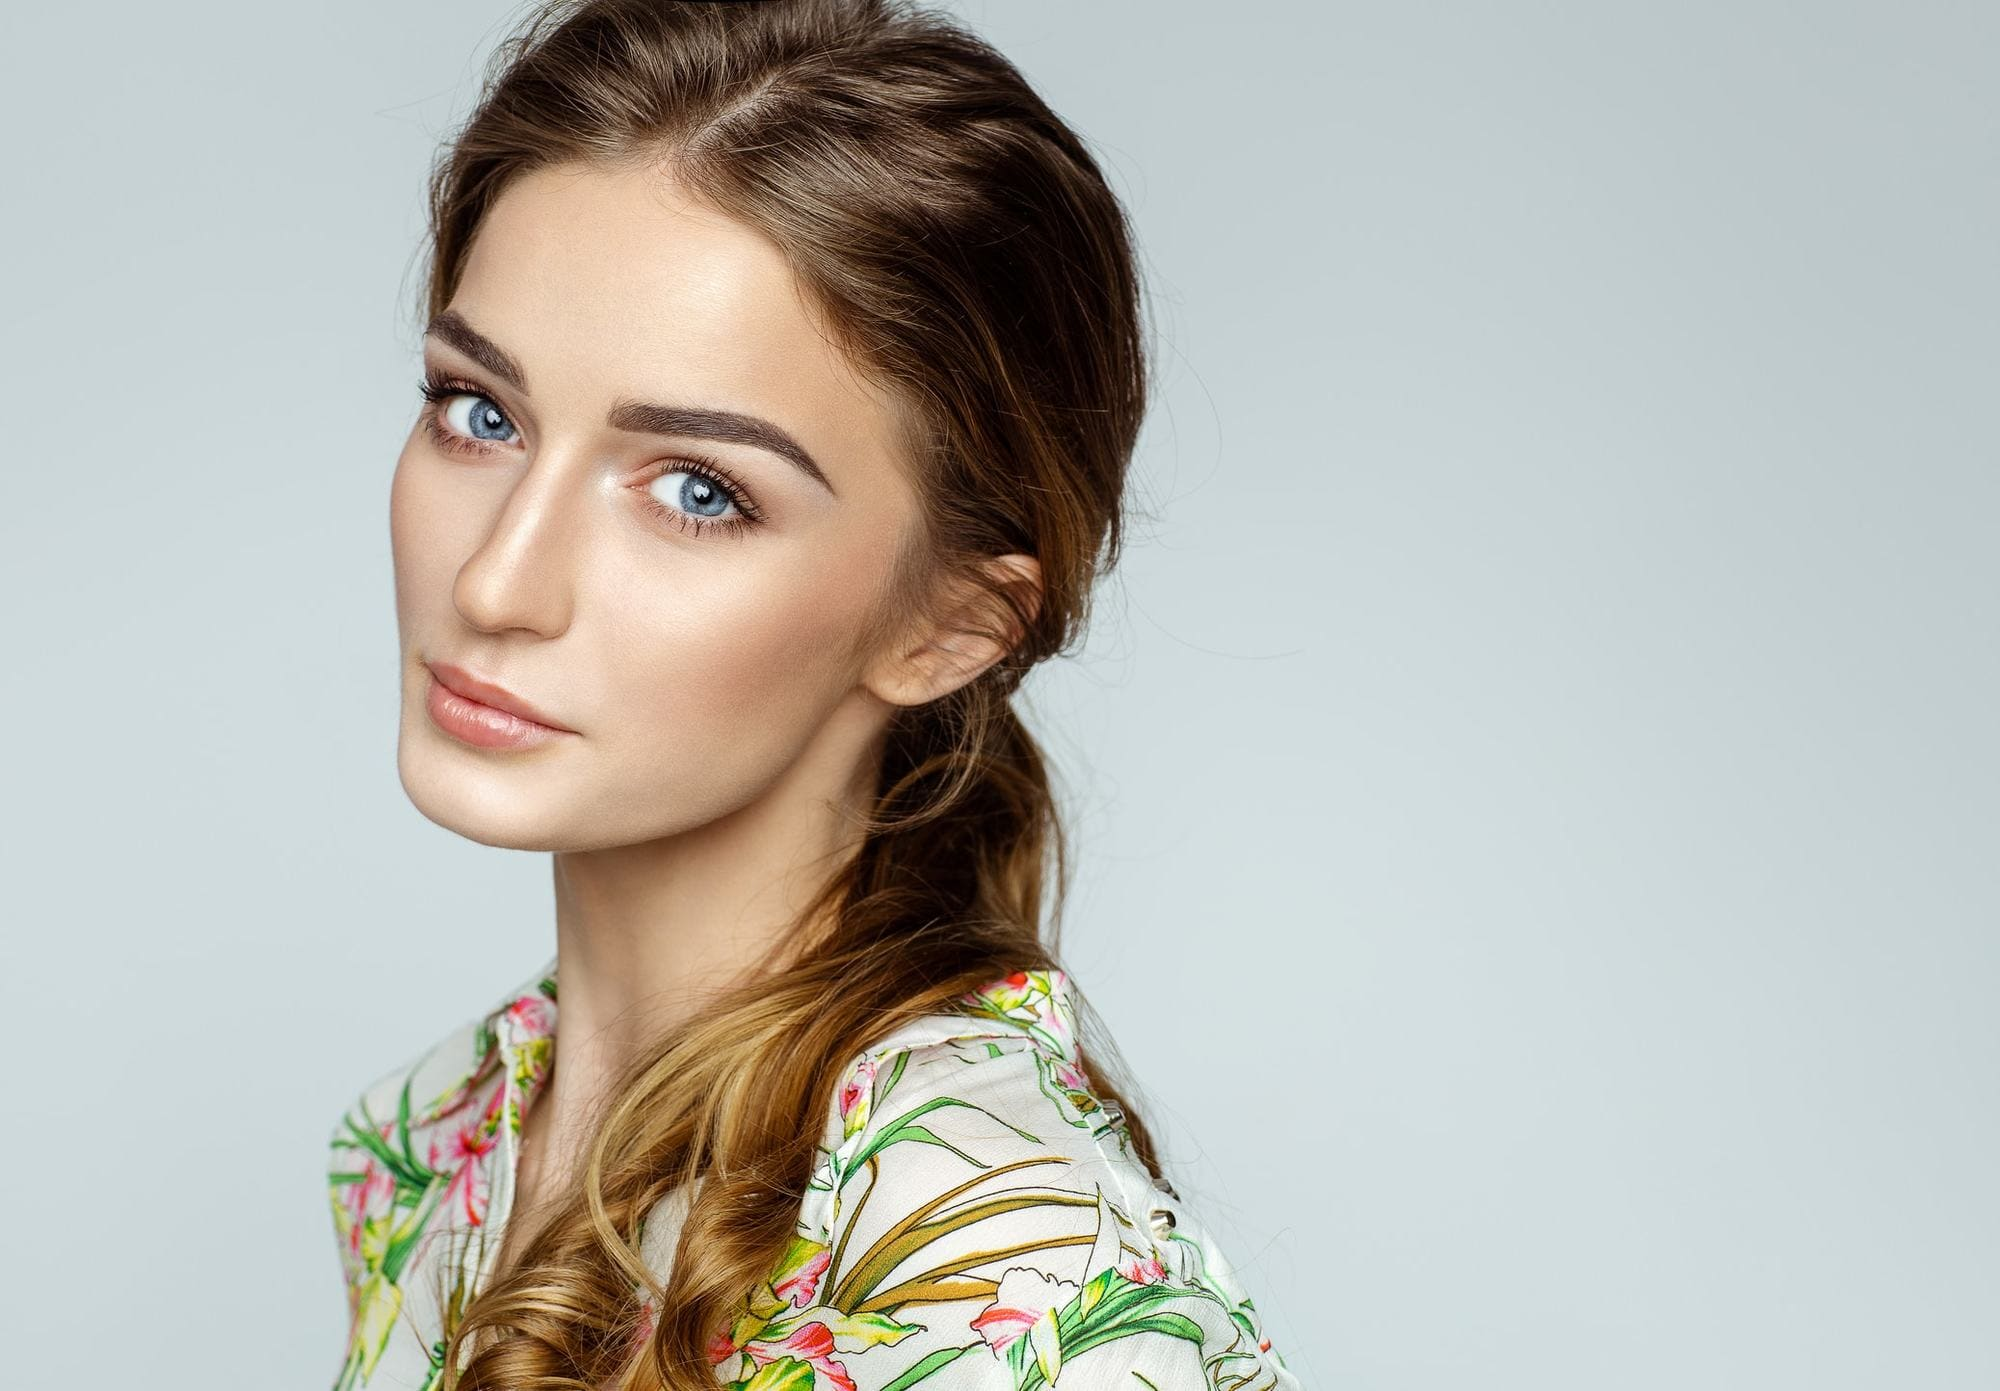 Oblong Faces Hairstyles For Women -Flattering Styles